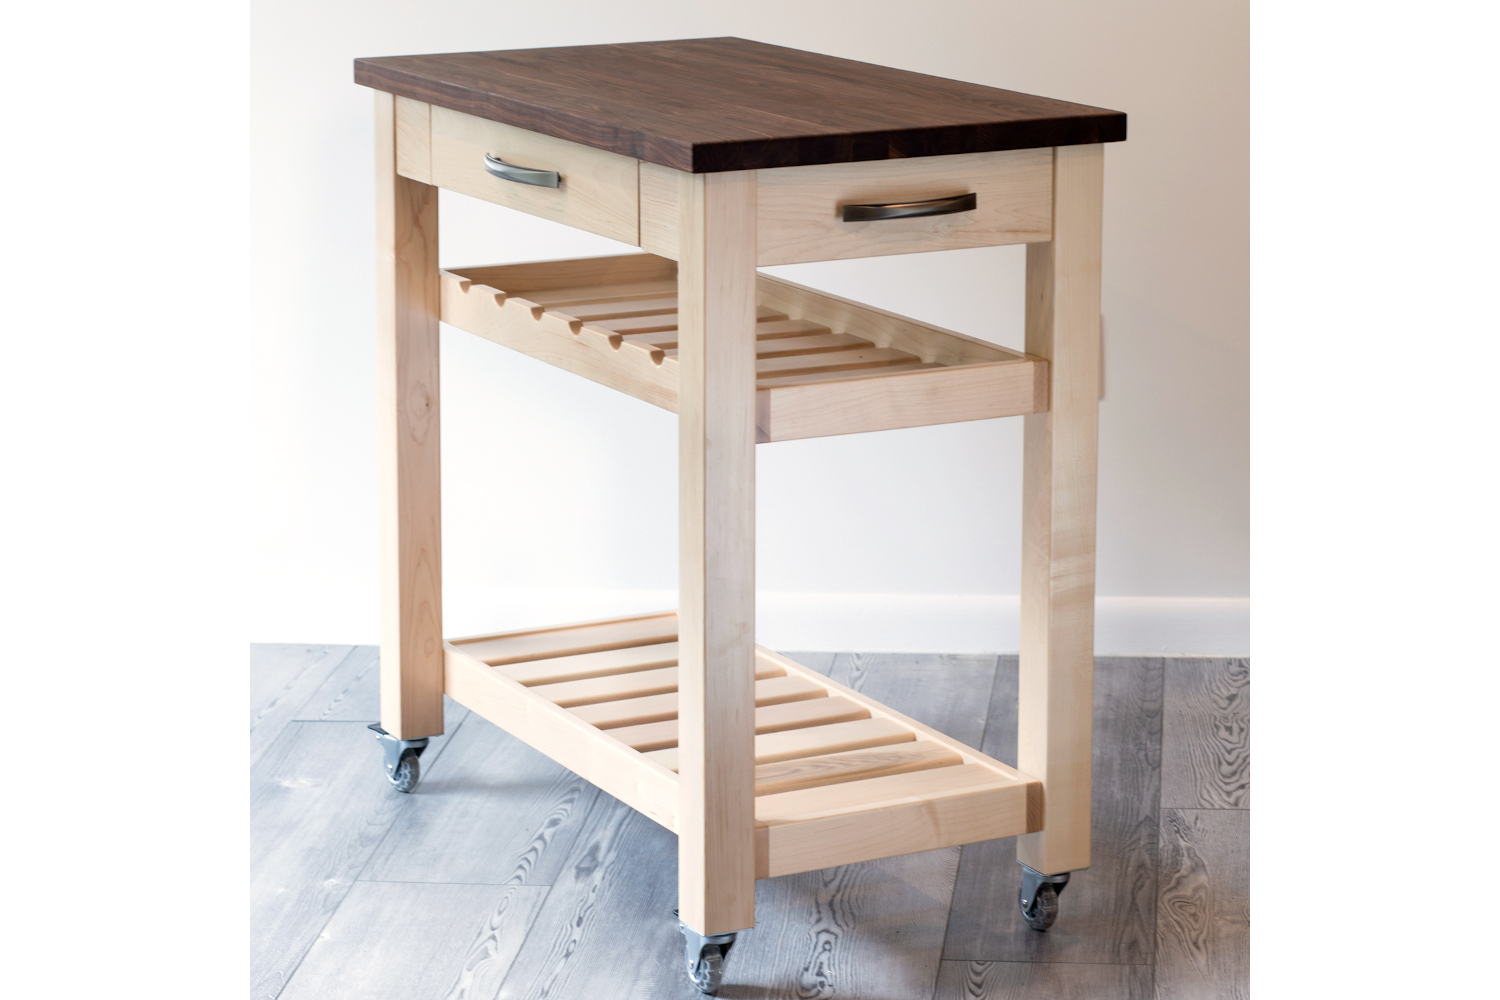 Martin's Home Wares Metro Kitchen Island - Natural Maple